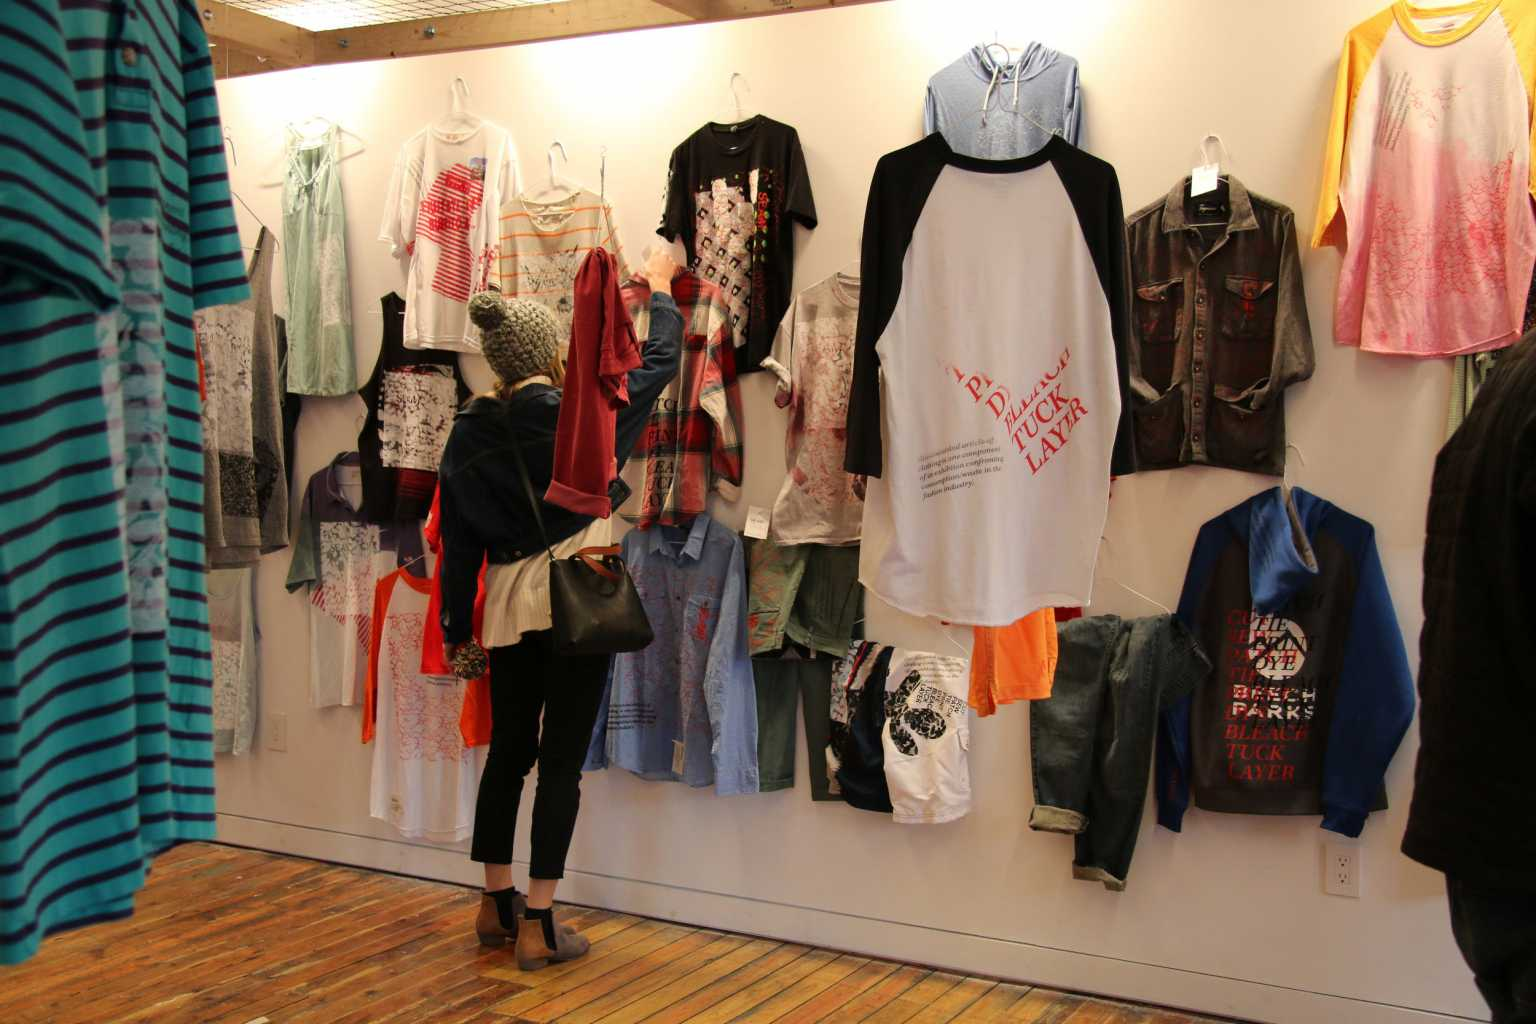 SEAM exhibition featuring altered, donated clothing to confront consumption/waste in the fashion industry